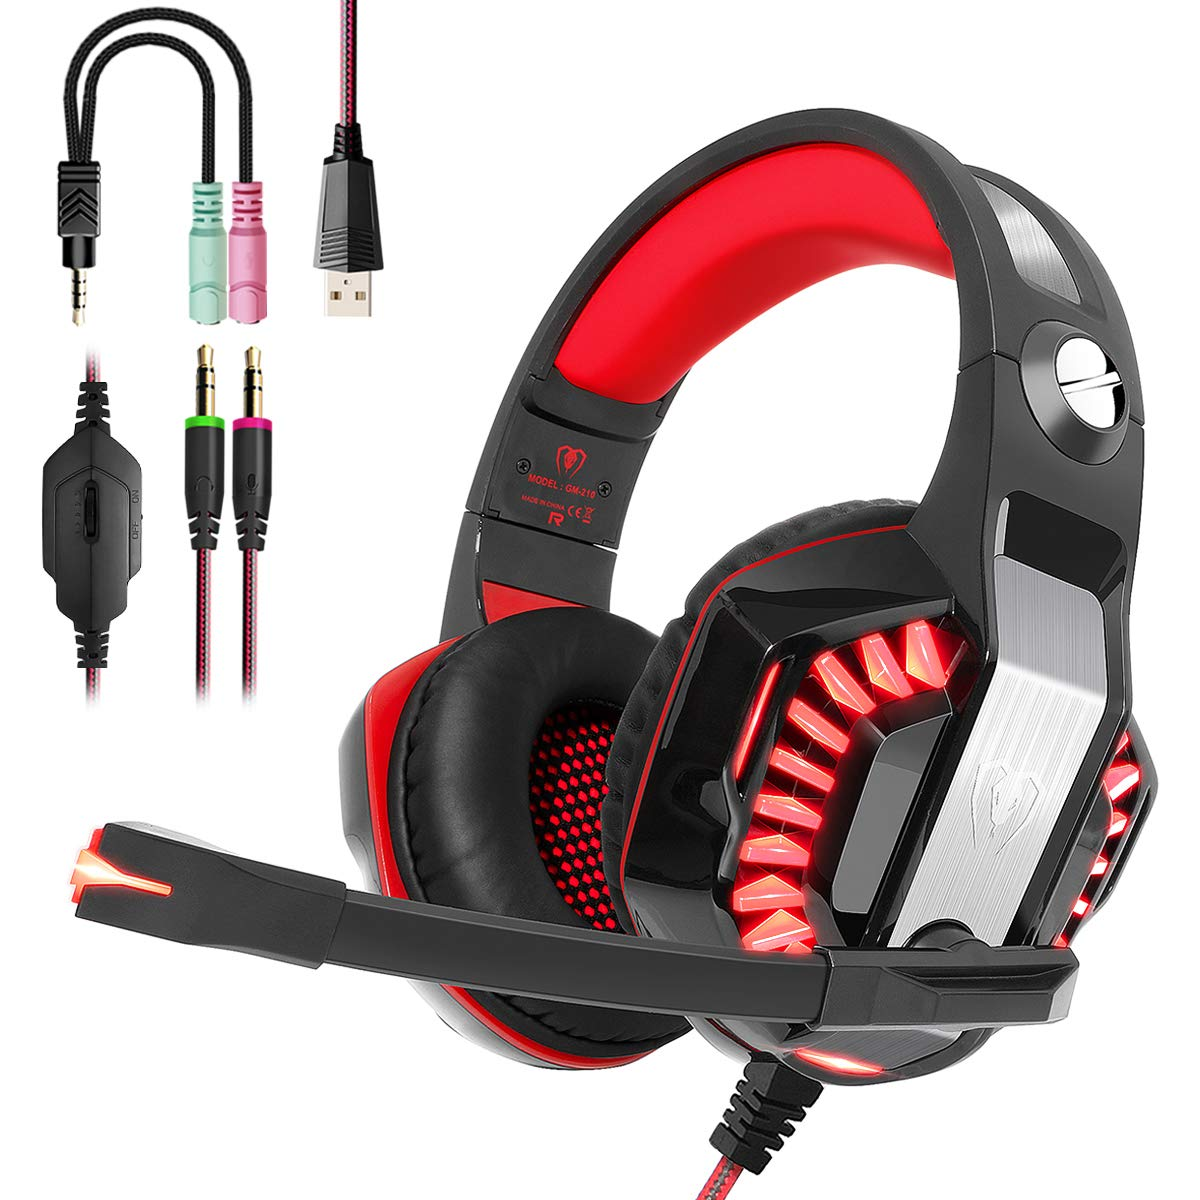 PS4 Gaming Headset, Beexcellent Xbox One Headset 3D Stereo Surround with Noise Canceling Mic, Large Ultra-Comfortable Earmuffs with LED Light for Nintendo Switch, PC, Laptop, Tablet